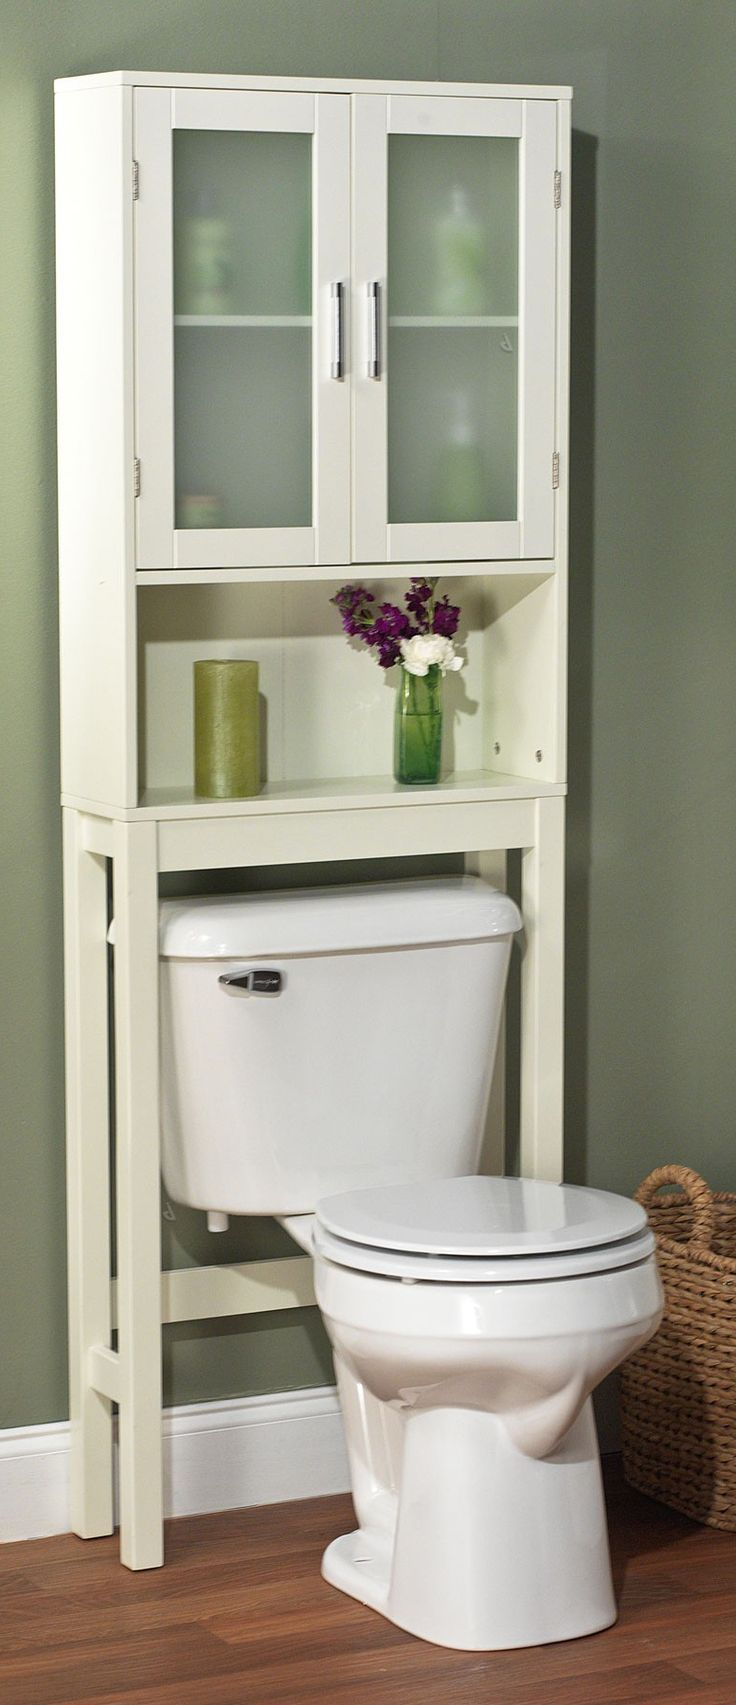 Bathroom space saver over toilet cupboard such a good for Small space bathroom